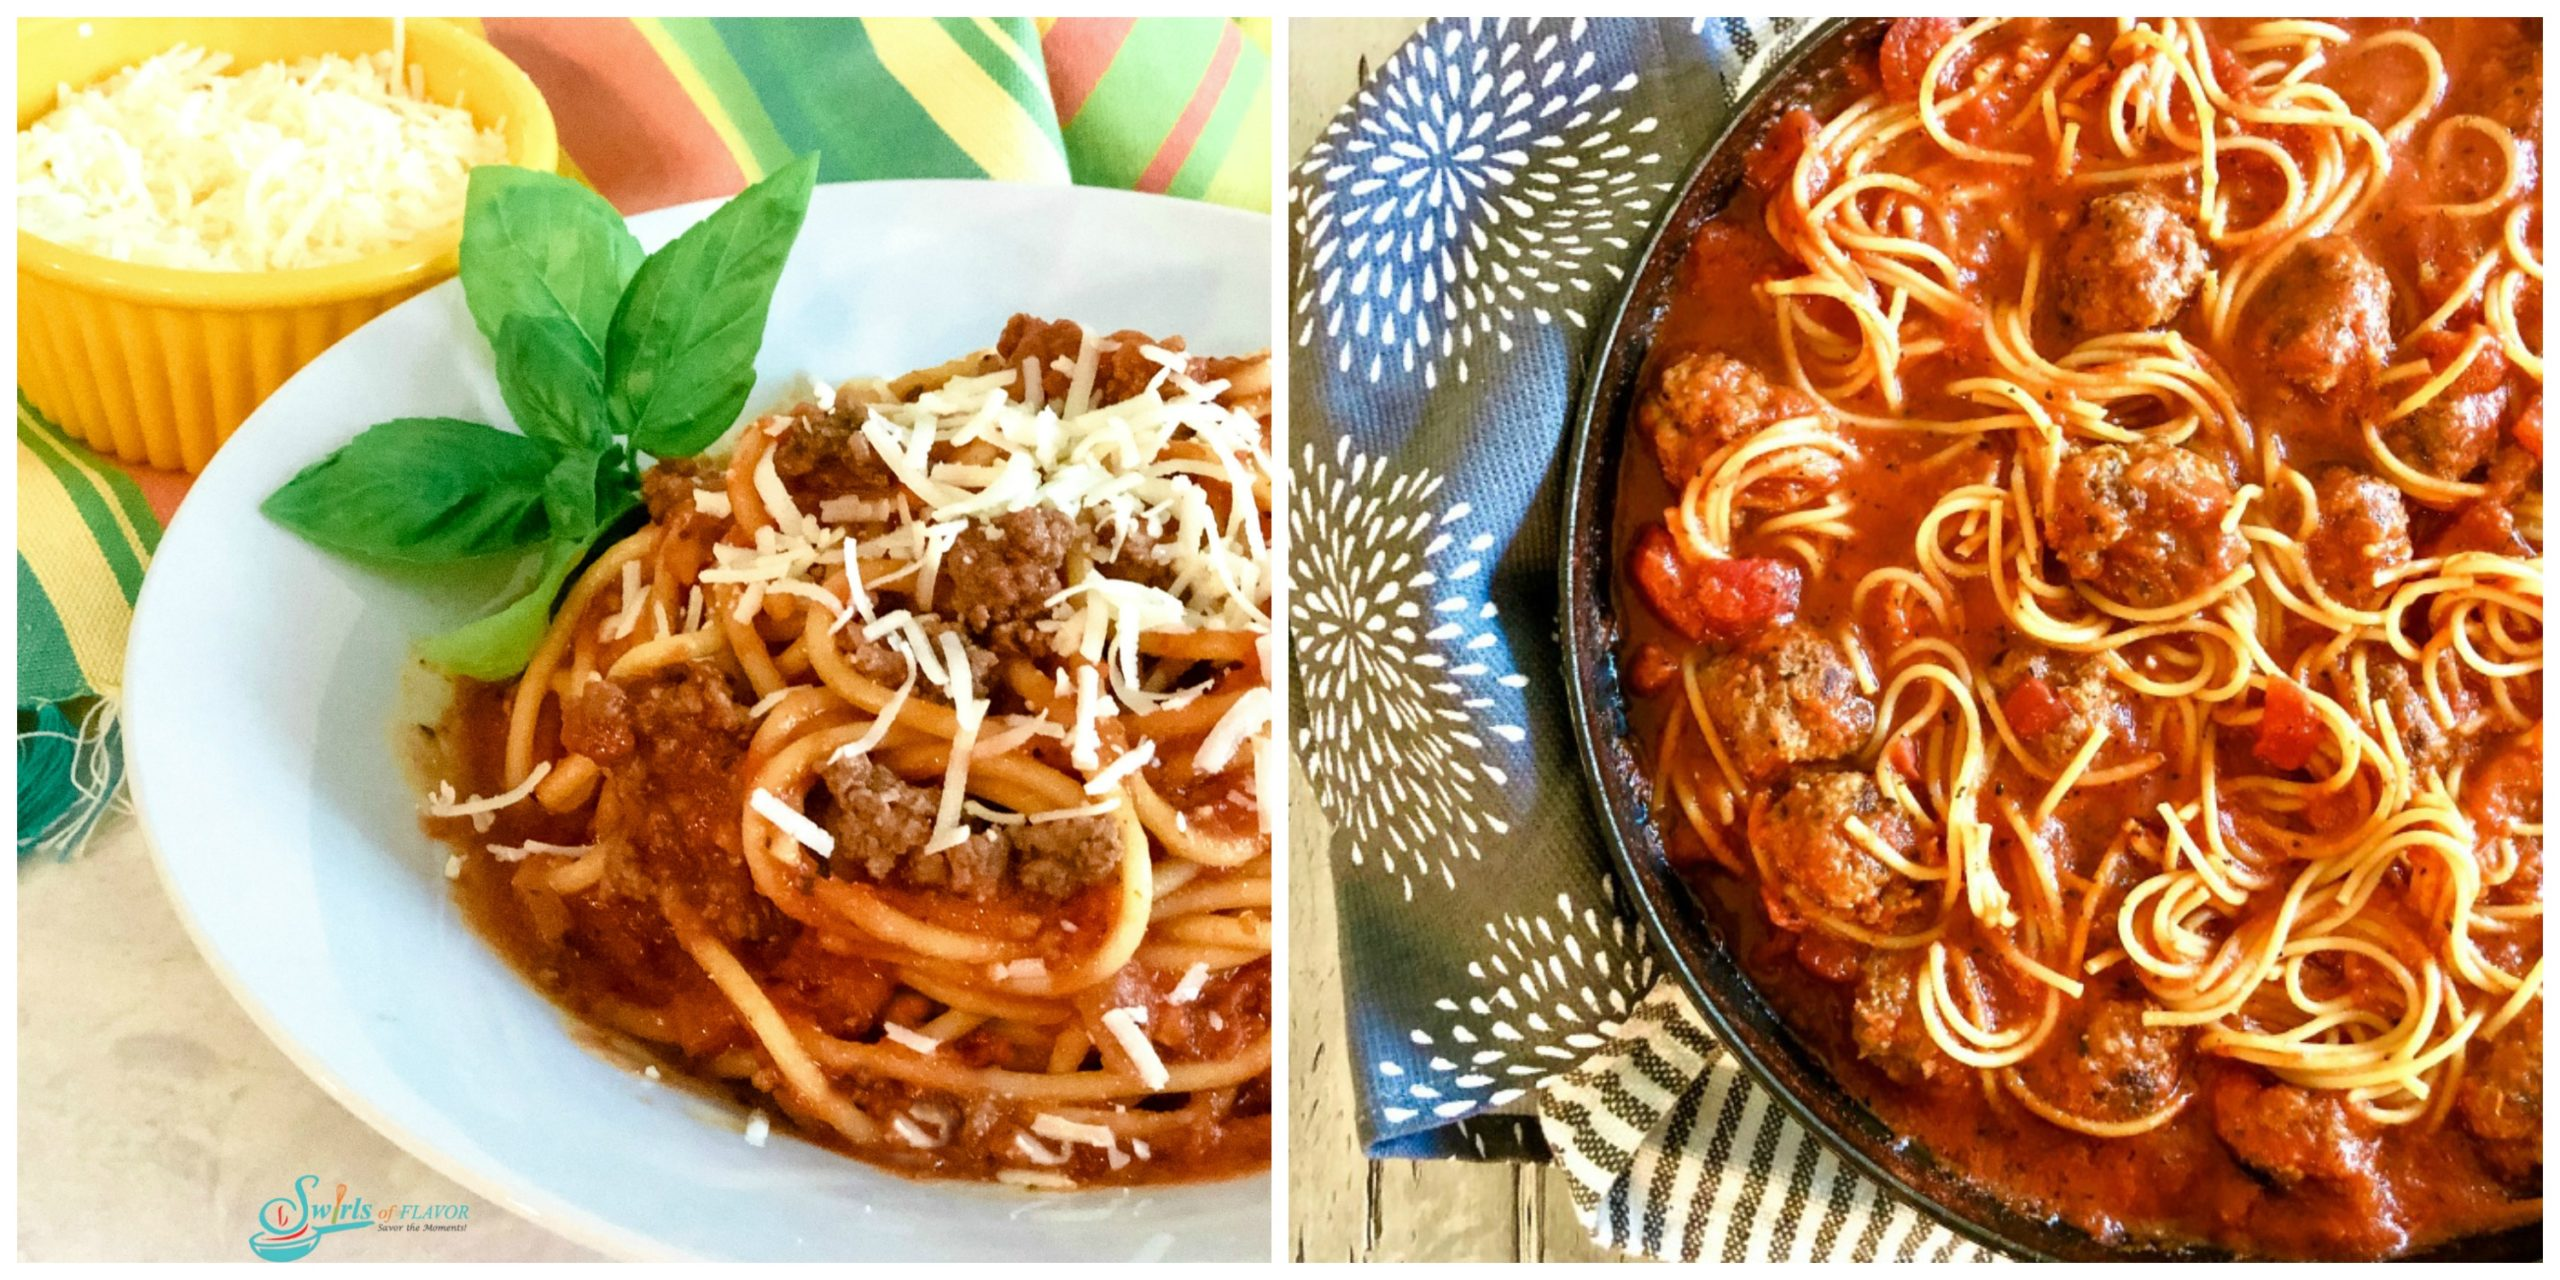 two spaghetti rrecipes